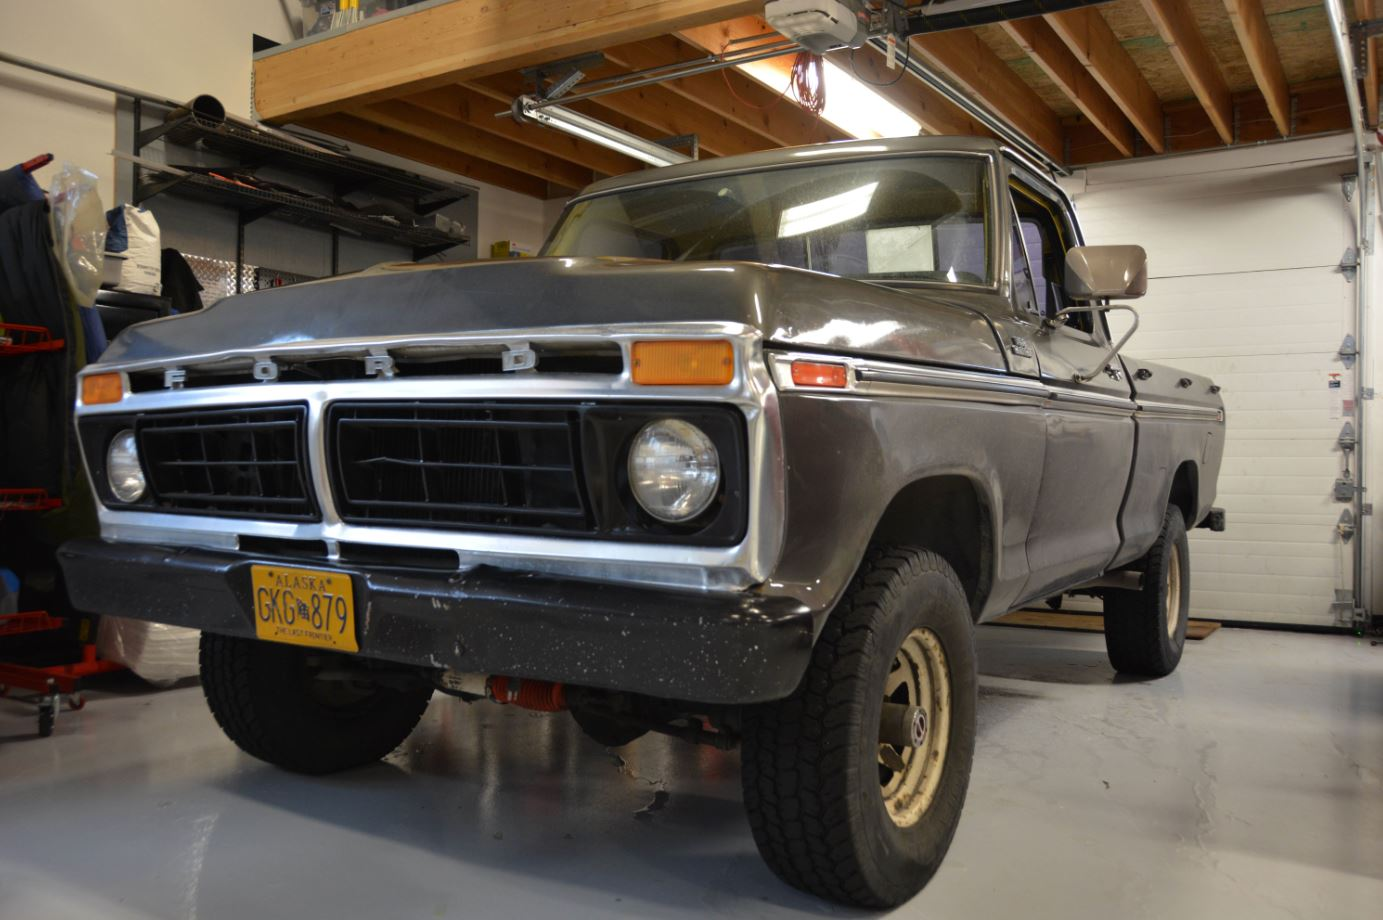 16 Year Old Built His Dream Truck 1977 Ford F150 2.jpg